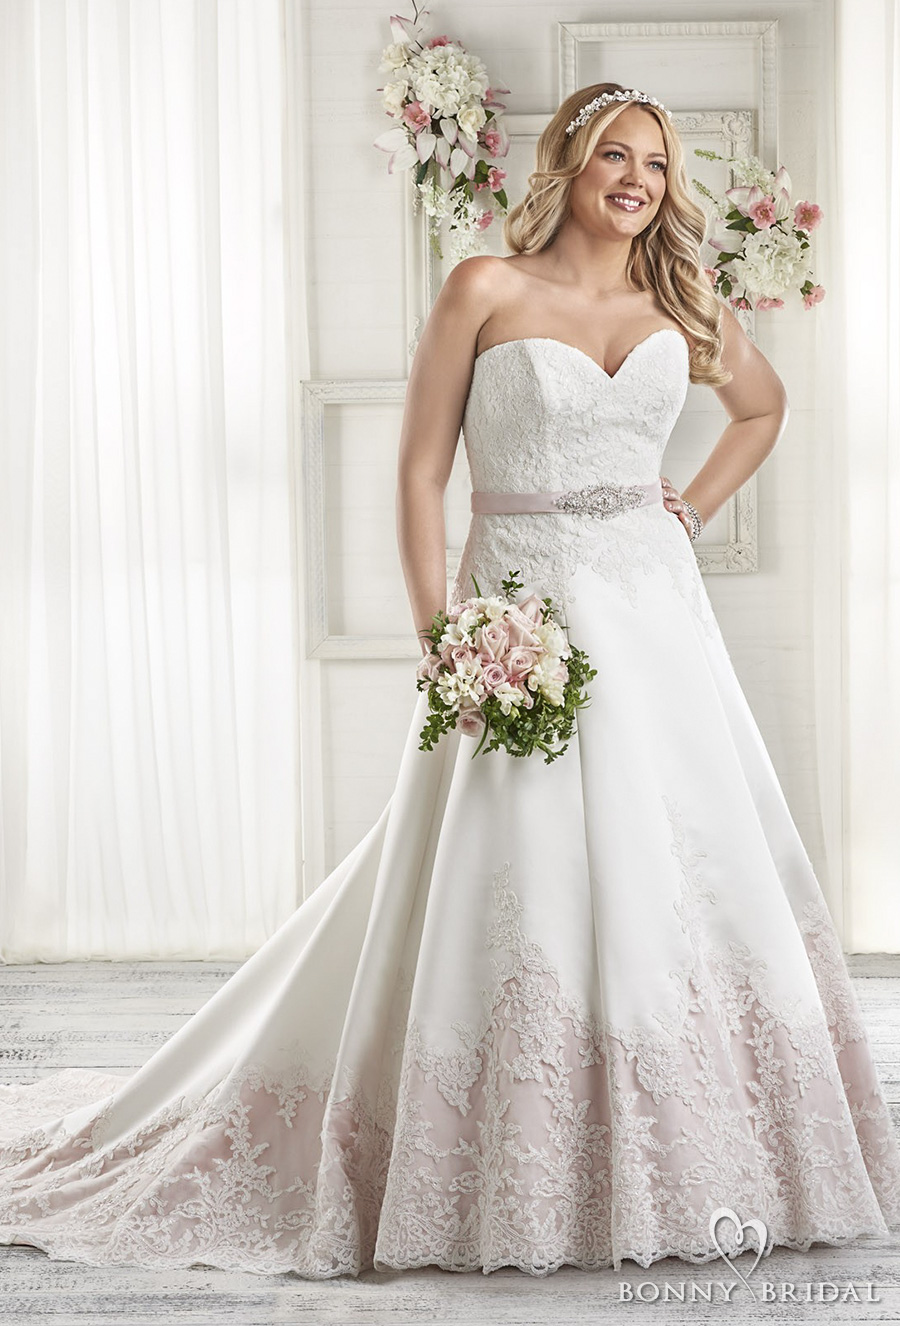 Bonny bridal wedding dresses unforgettable styles for for Colored plus size wedding dresses